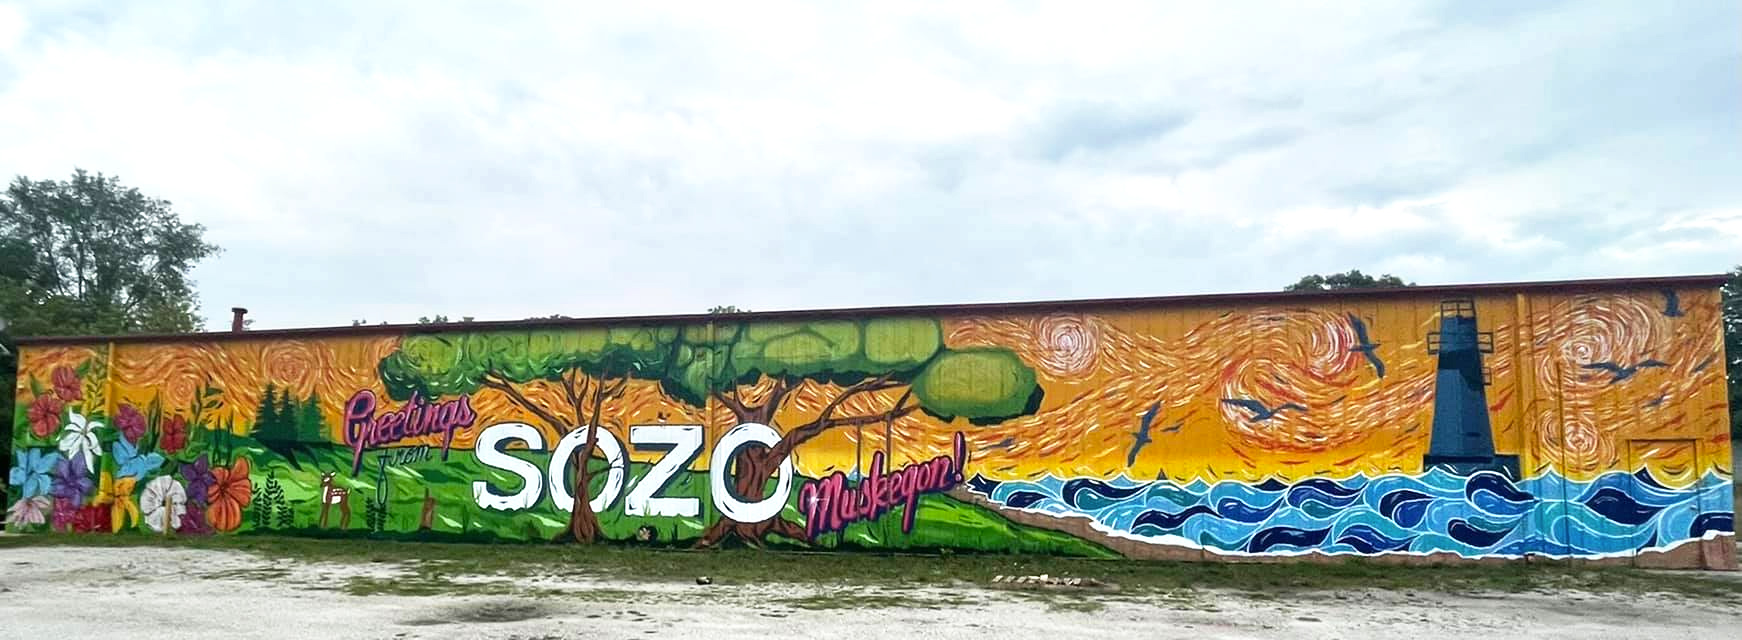 Sozo Cannabis Mural by Muskegon City Government